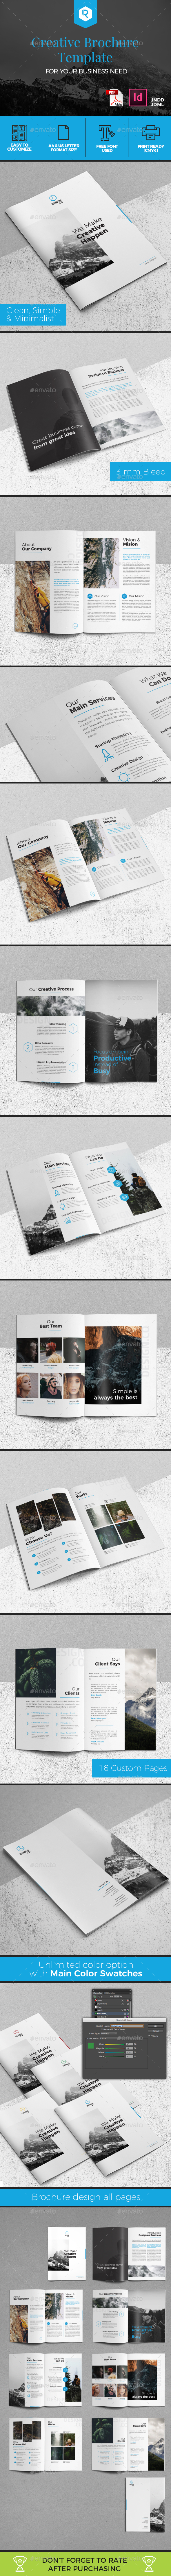 Creative Brochure Template Vol. 02 - Corporate Brochures